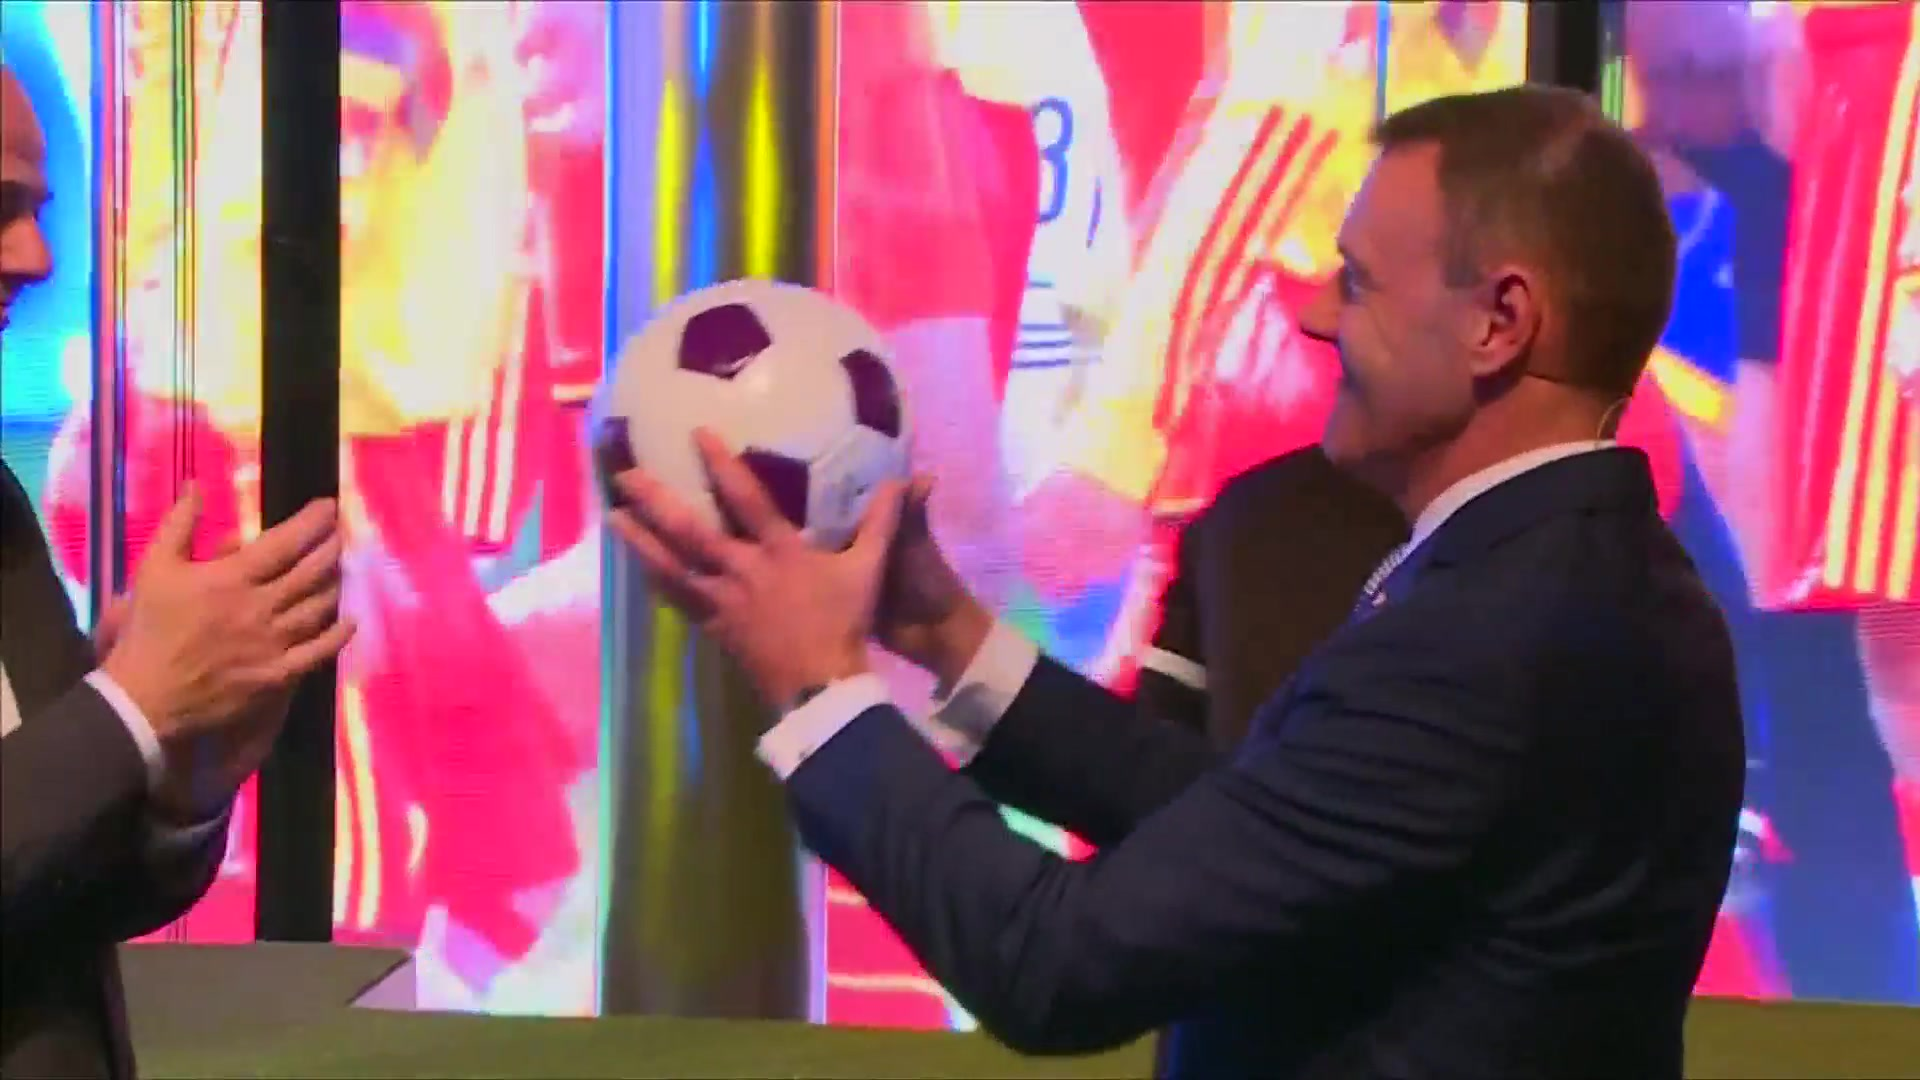 FIFA President Infantino Opens Soccer Museum in Zurich